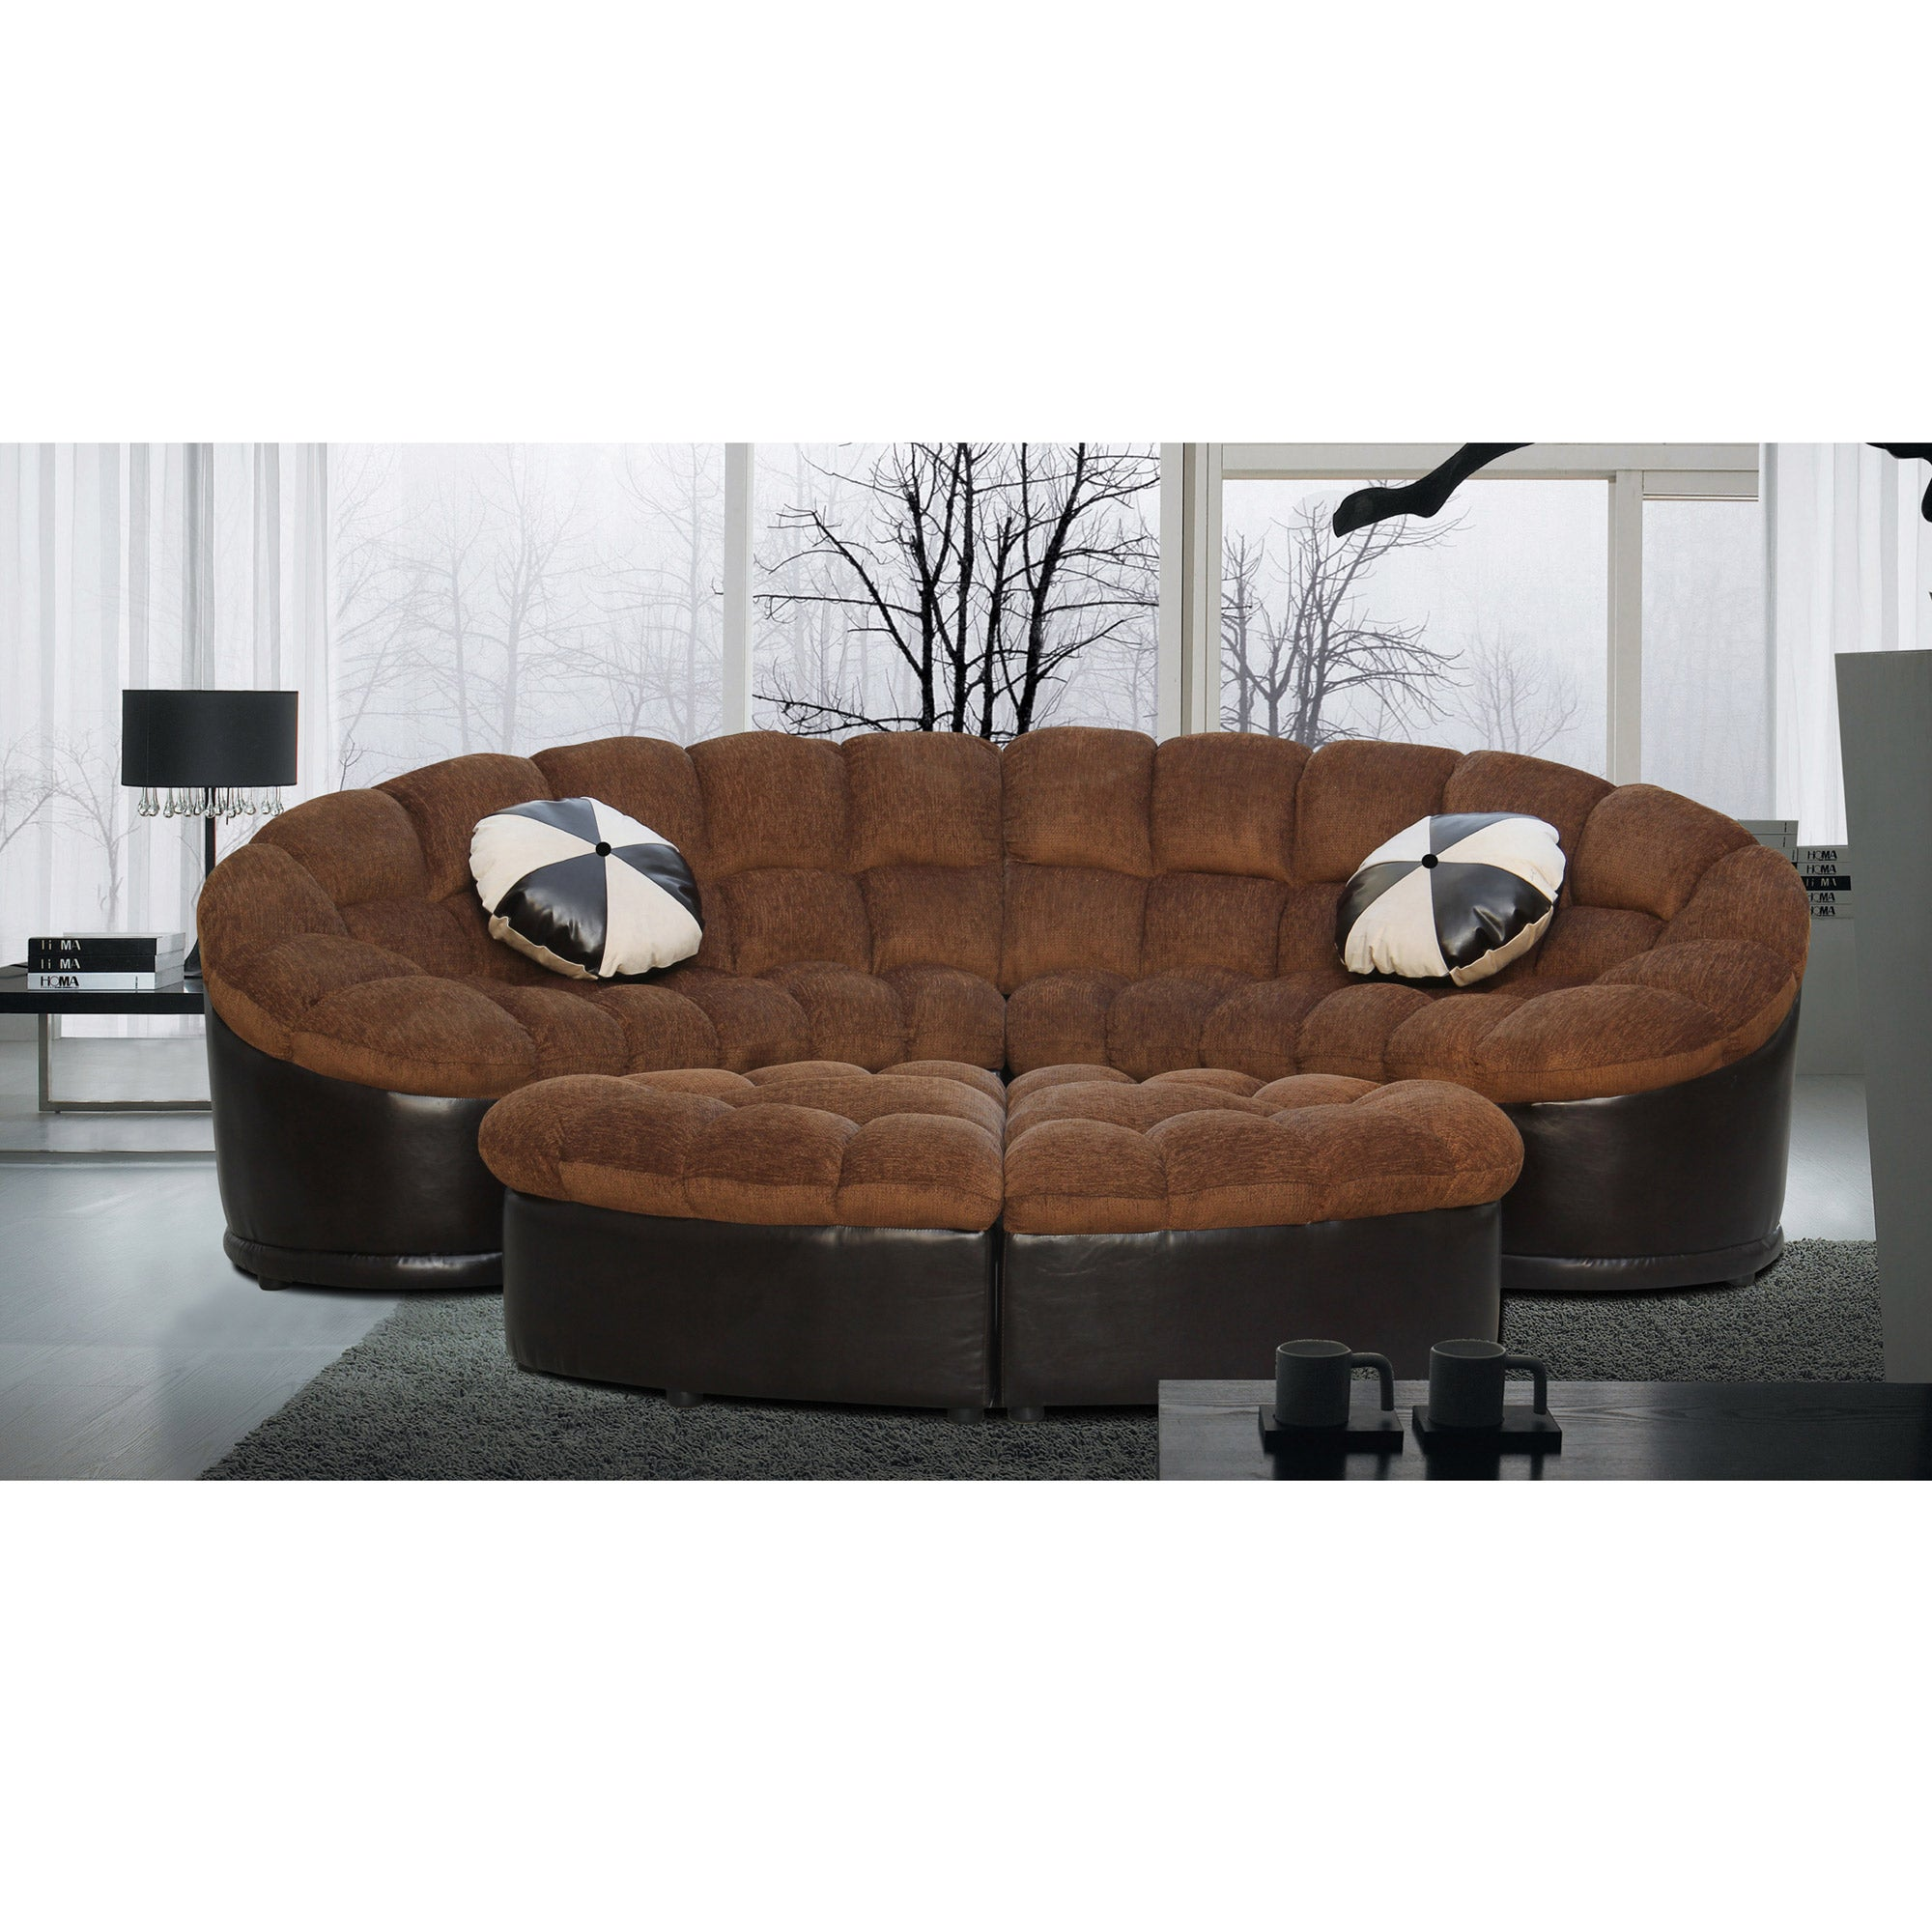 Diana 4-pc Comfy Sectional Sofa Set